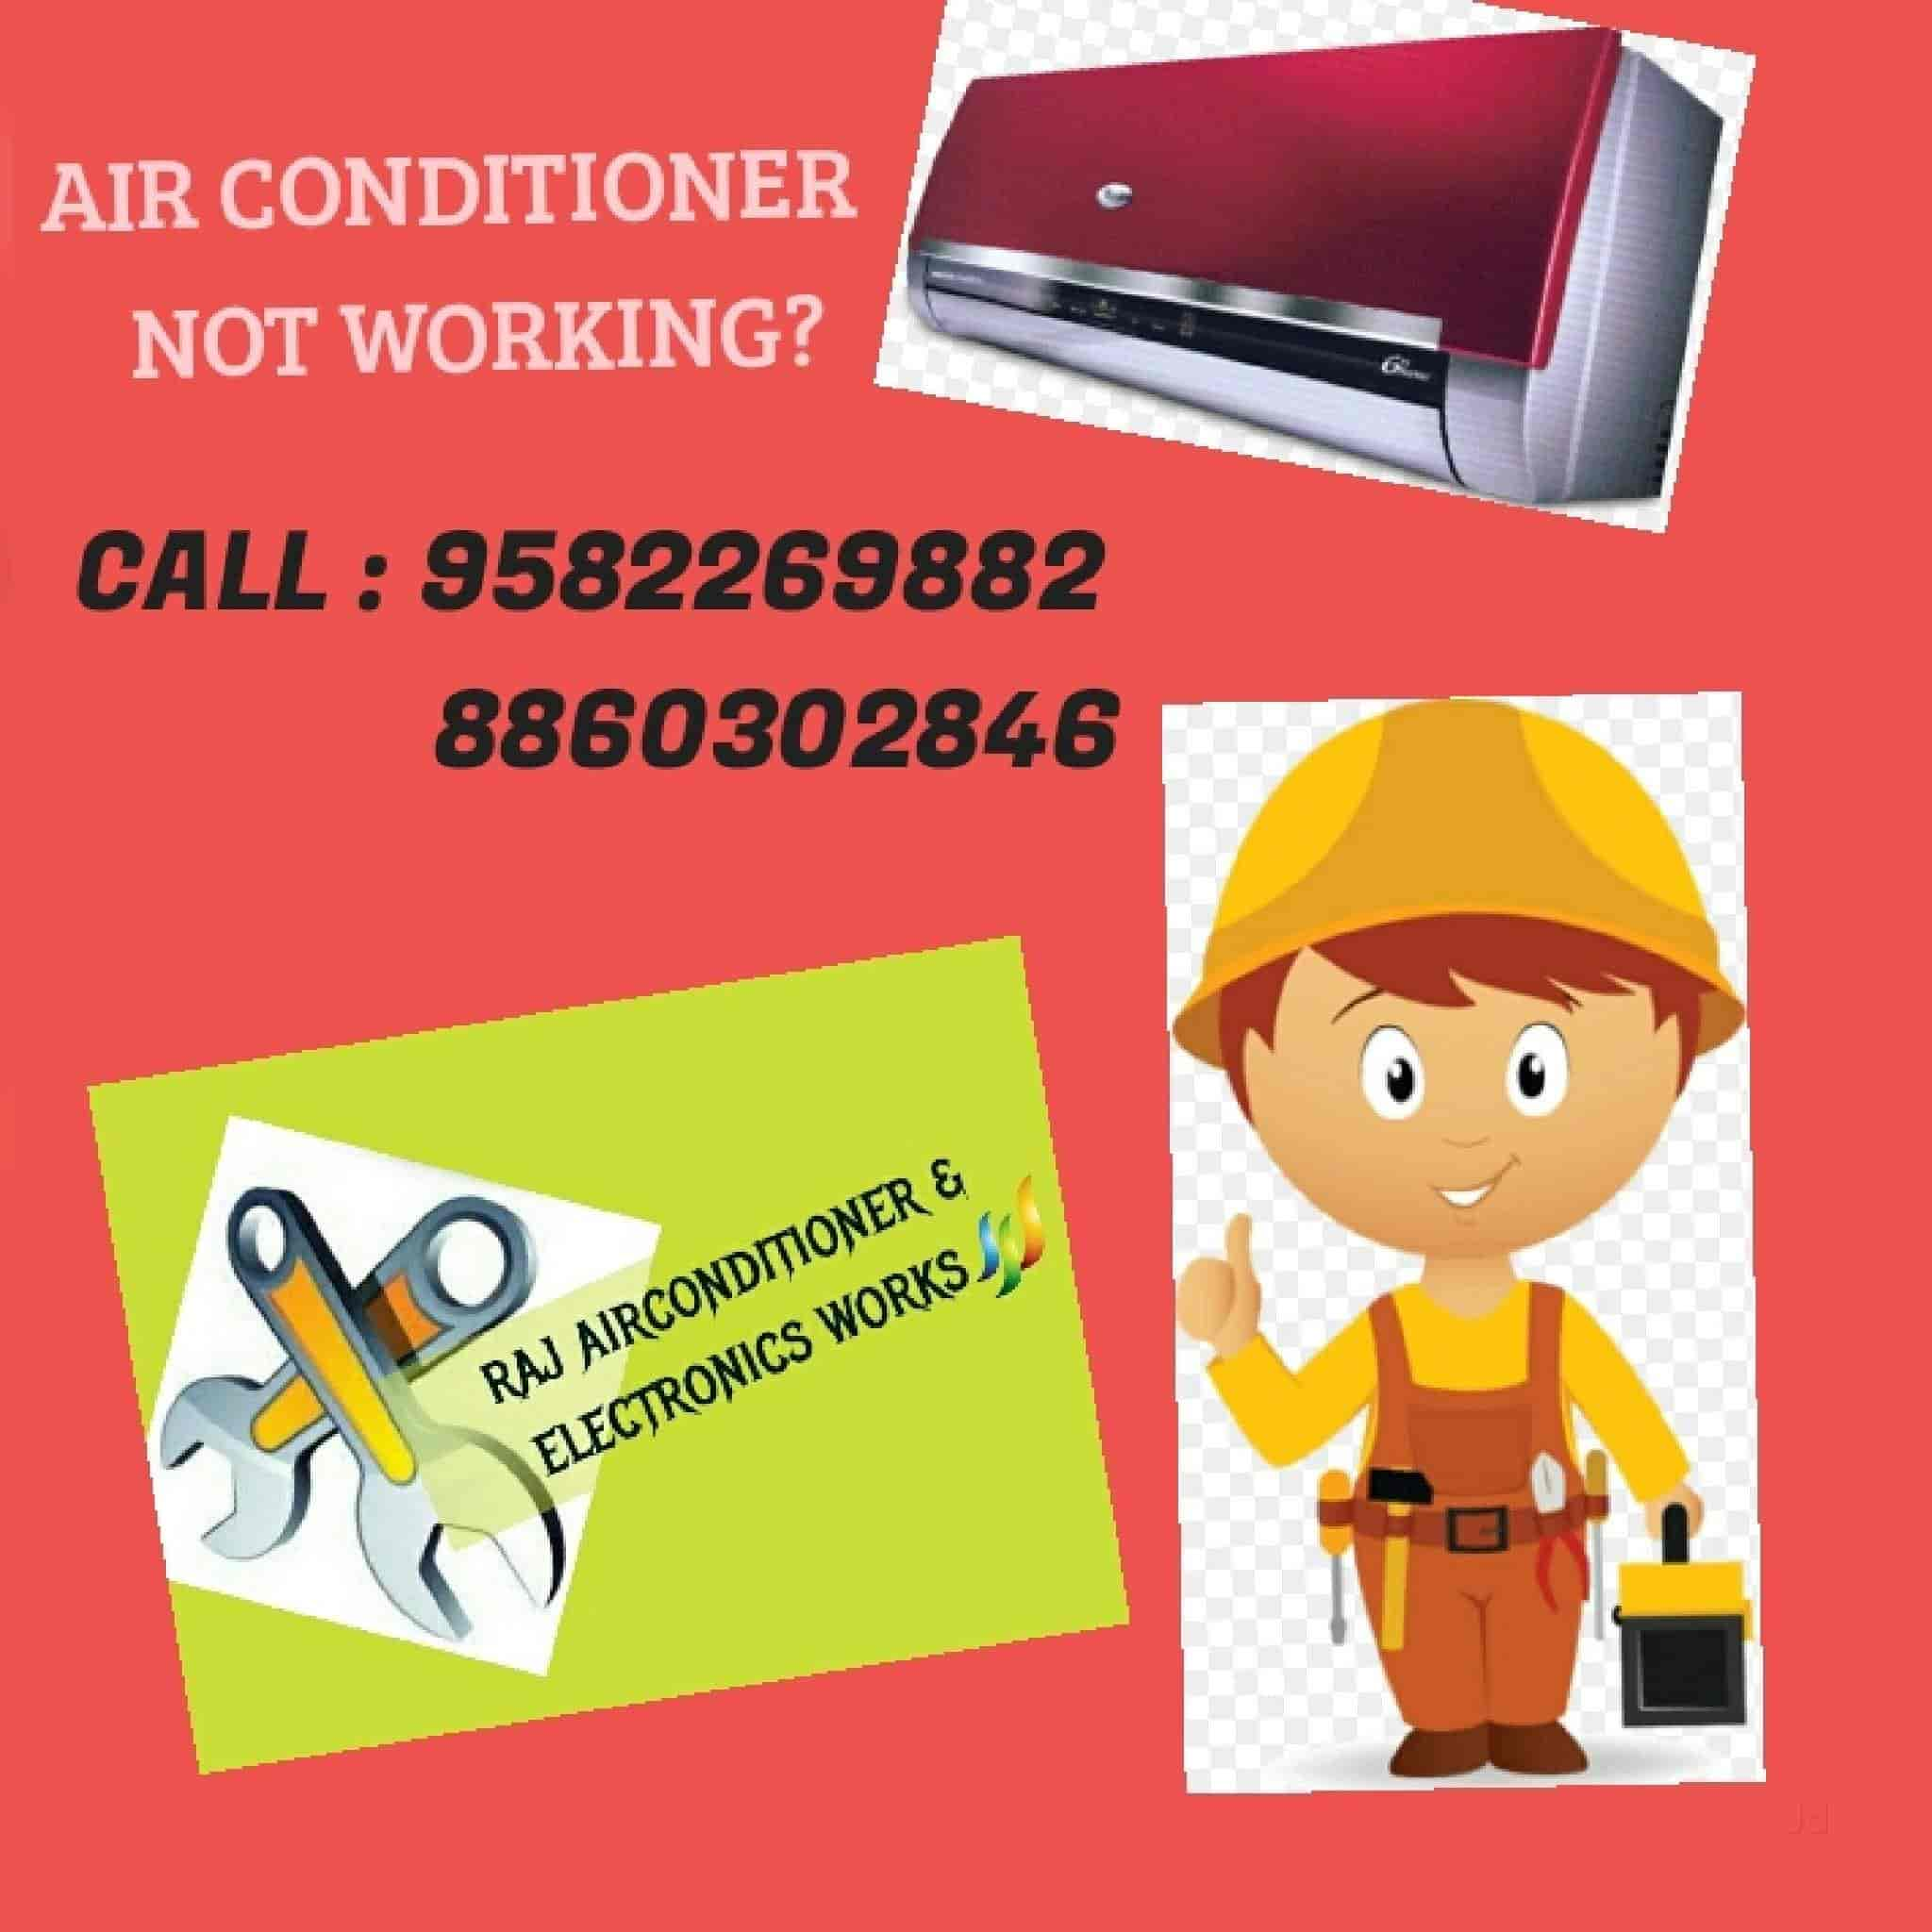 Raj Air Conditioner & Electronics Works, Paschim Vihar - AC